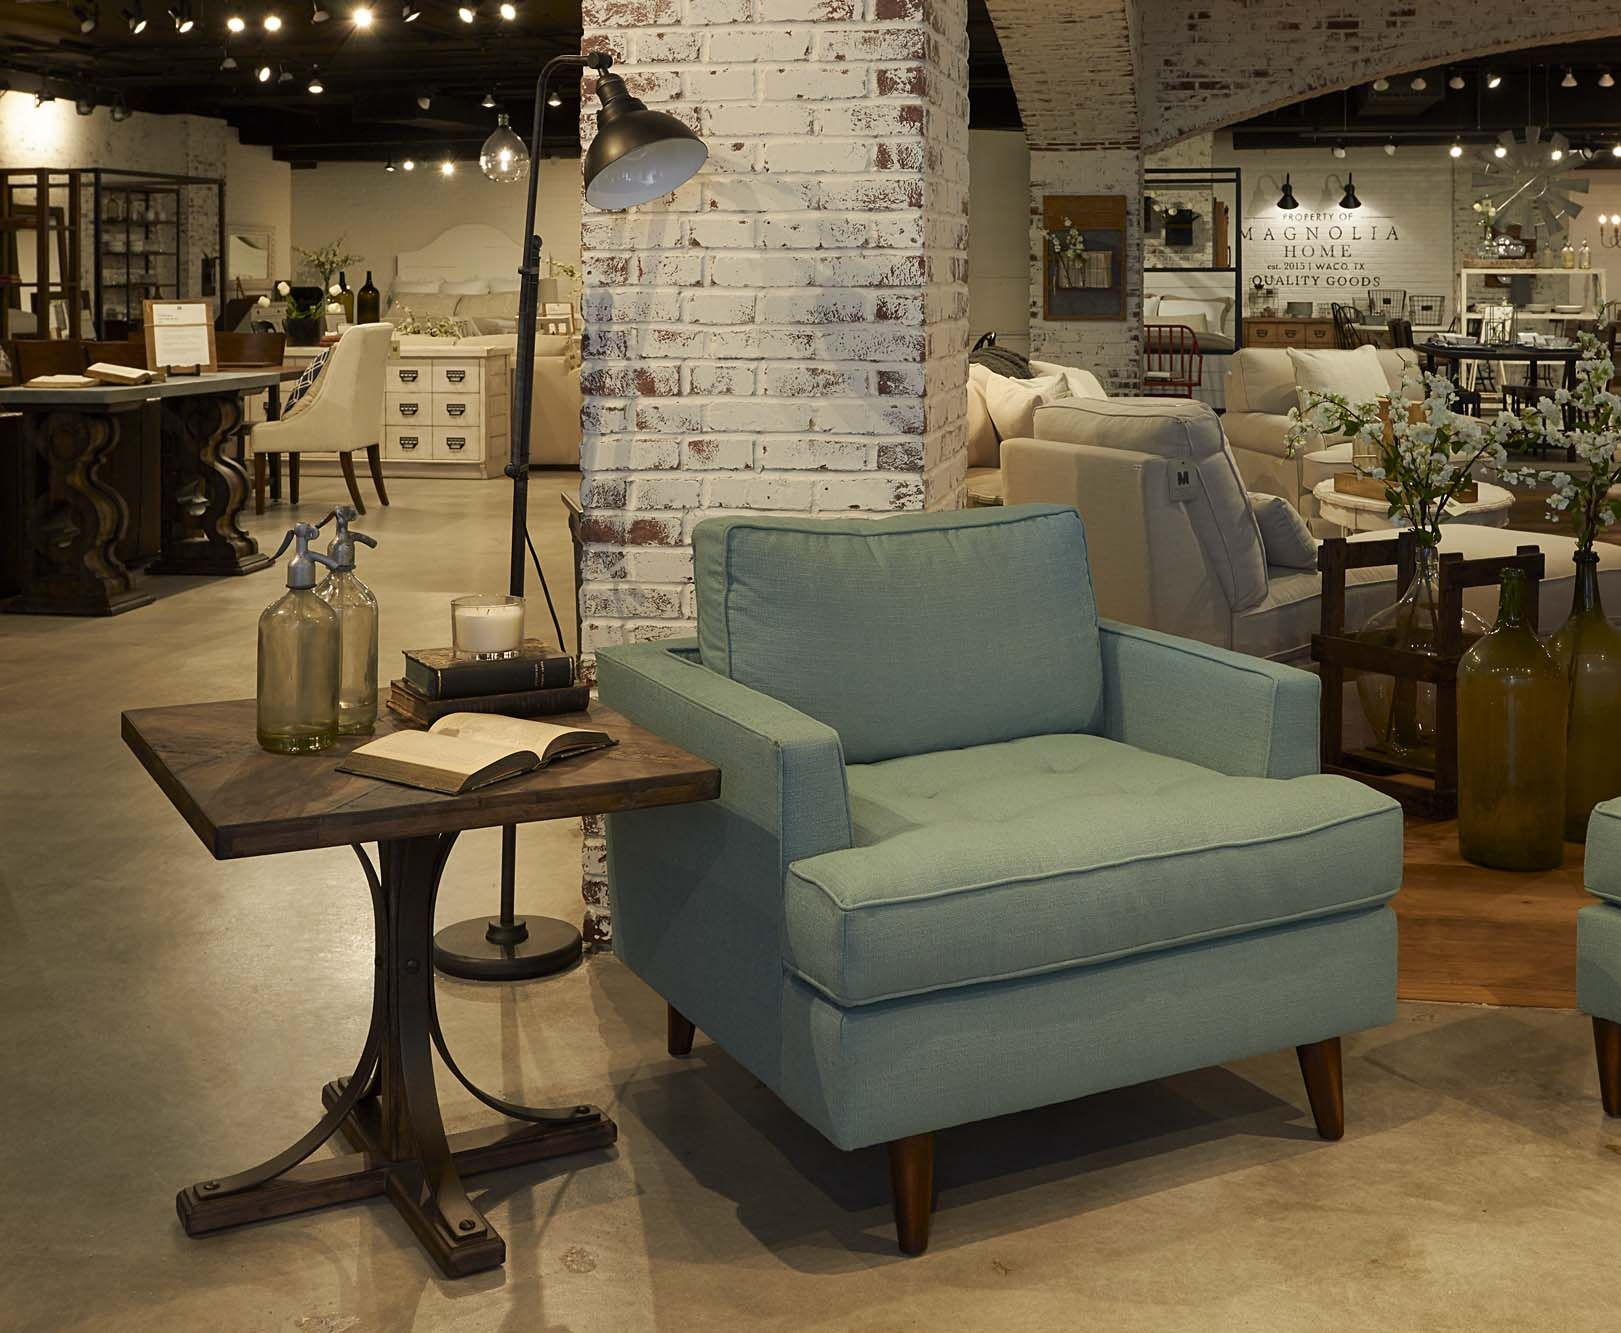 Chip And Joanna Gaines Of The Hgtv Show Fixer Upper Have Gone Beyond Tv World With Their New Line Furniture Magnolia Home Manufactured By